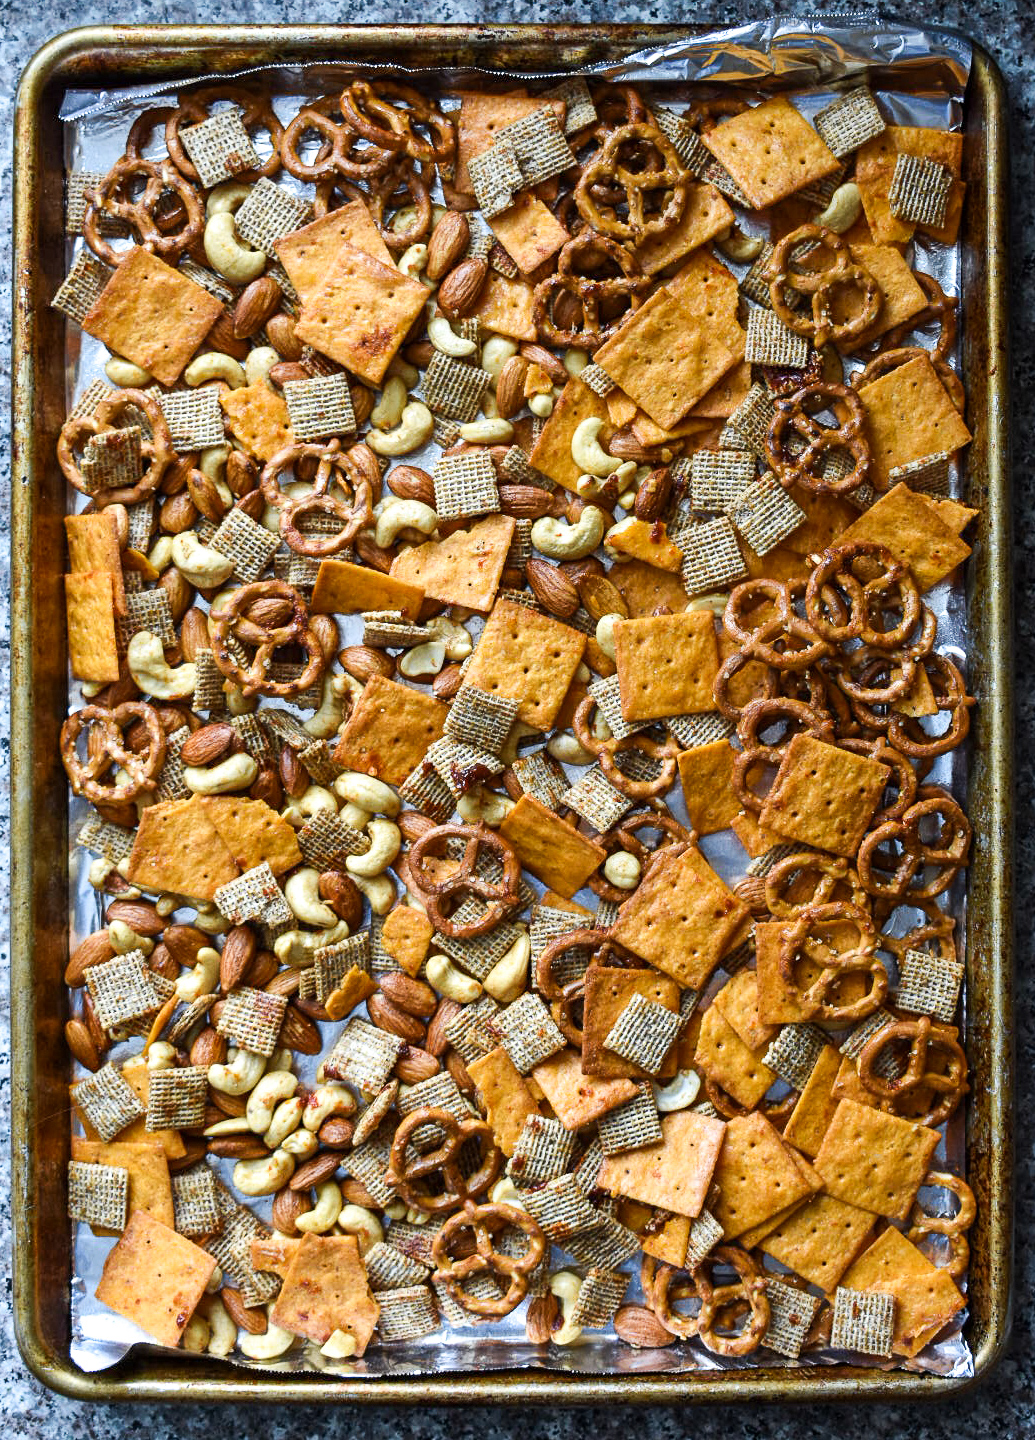 sheet pan of snack mix